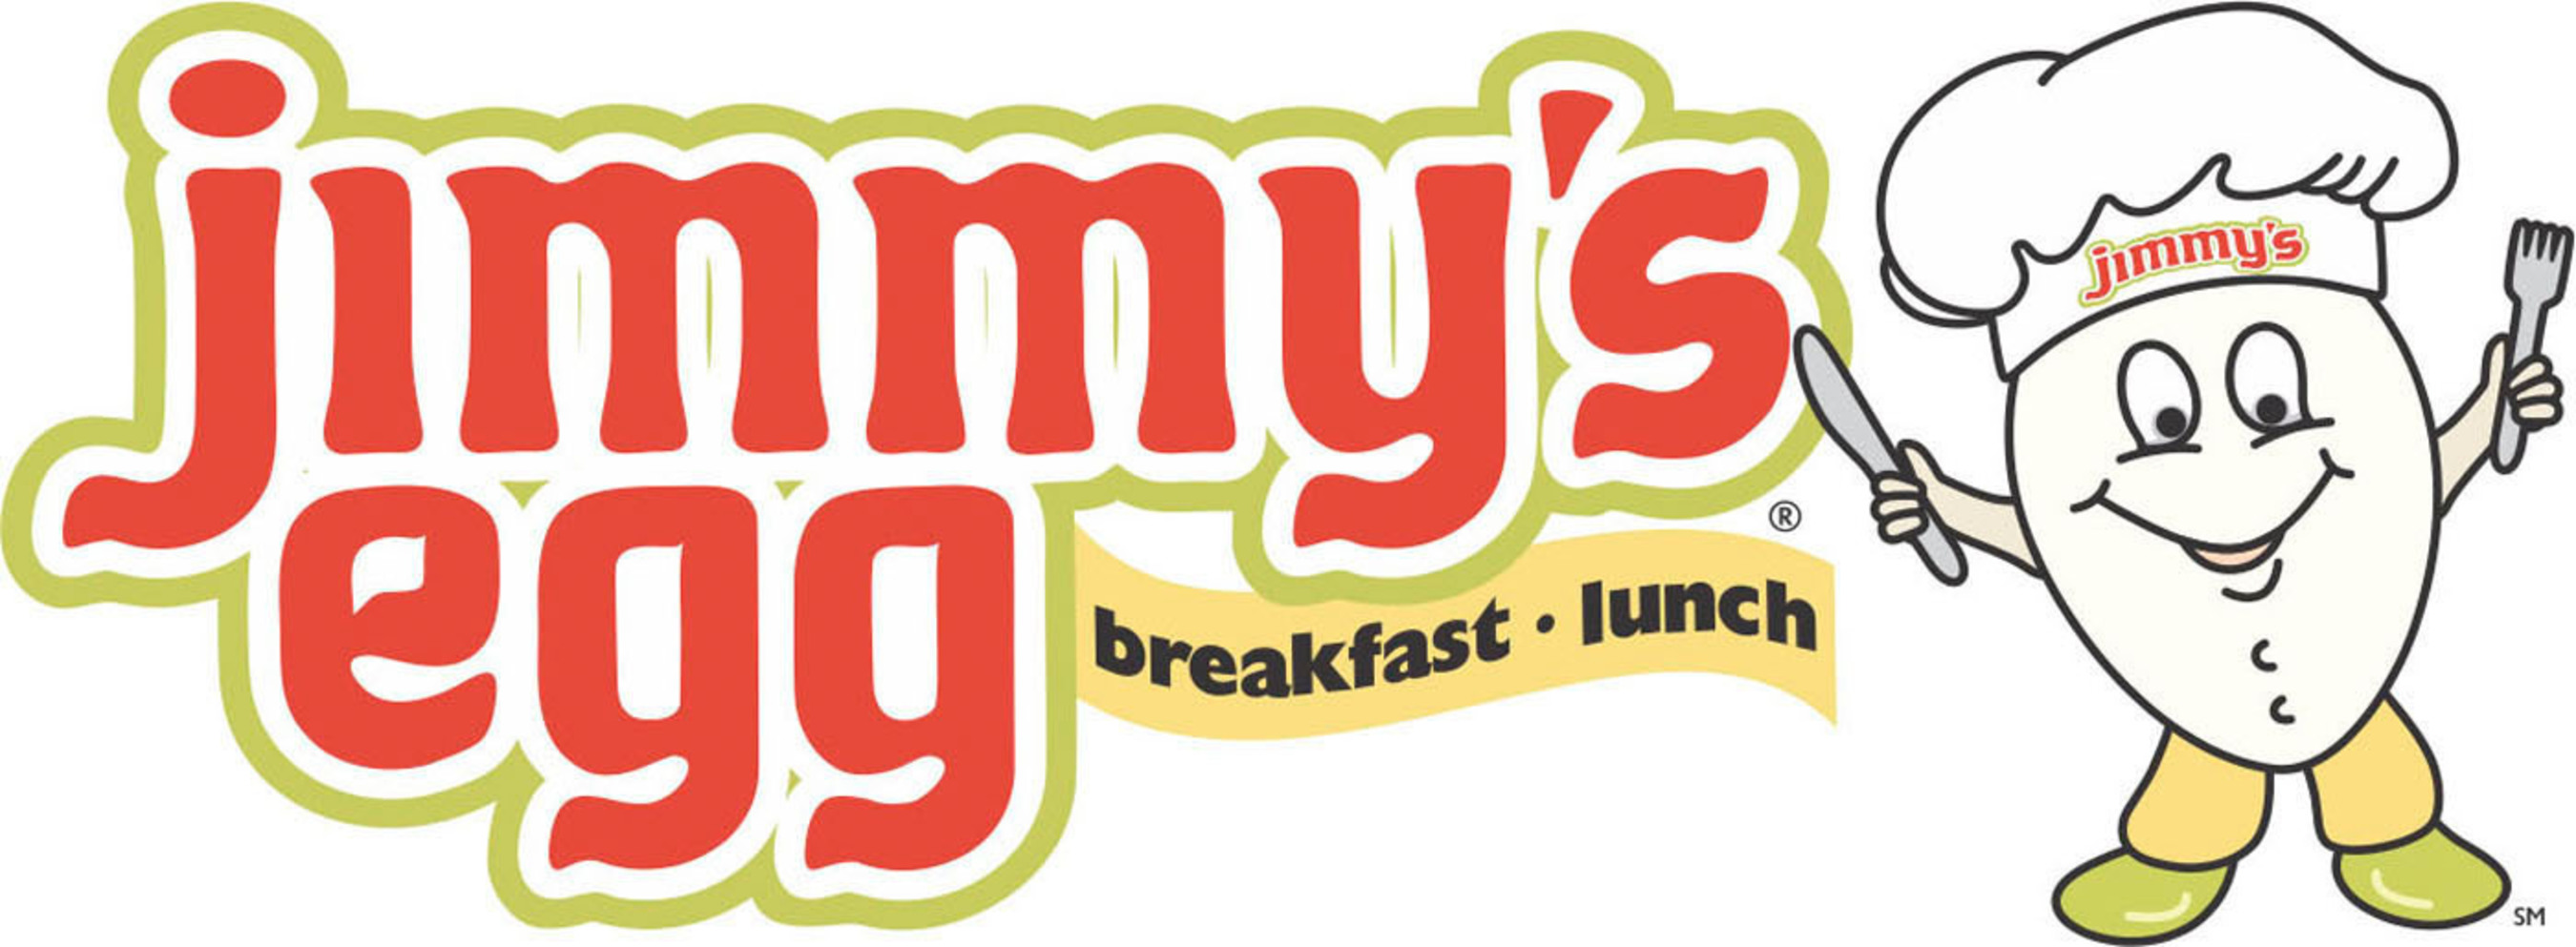 Jimmy's Egg brings guests the opportunity to enjoy full cups of coffee, delicious omelettes and fresh-baked breads served by an attentive staff. (PRNewsFoto/Jimmy's Egg, LLC) (PRNewsFoto/)